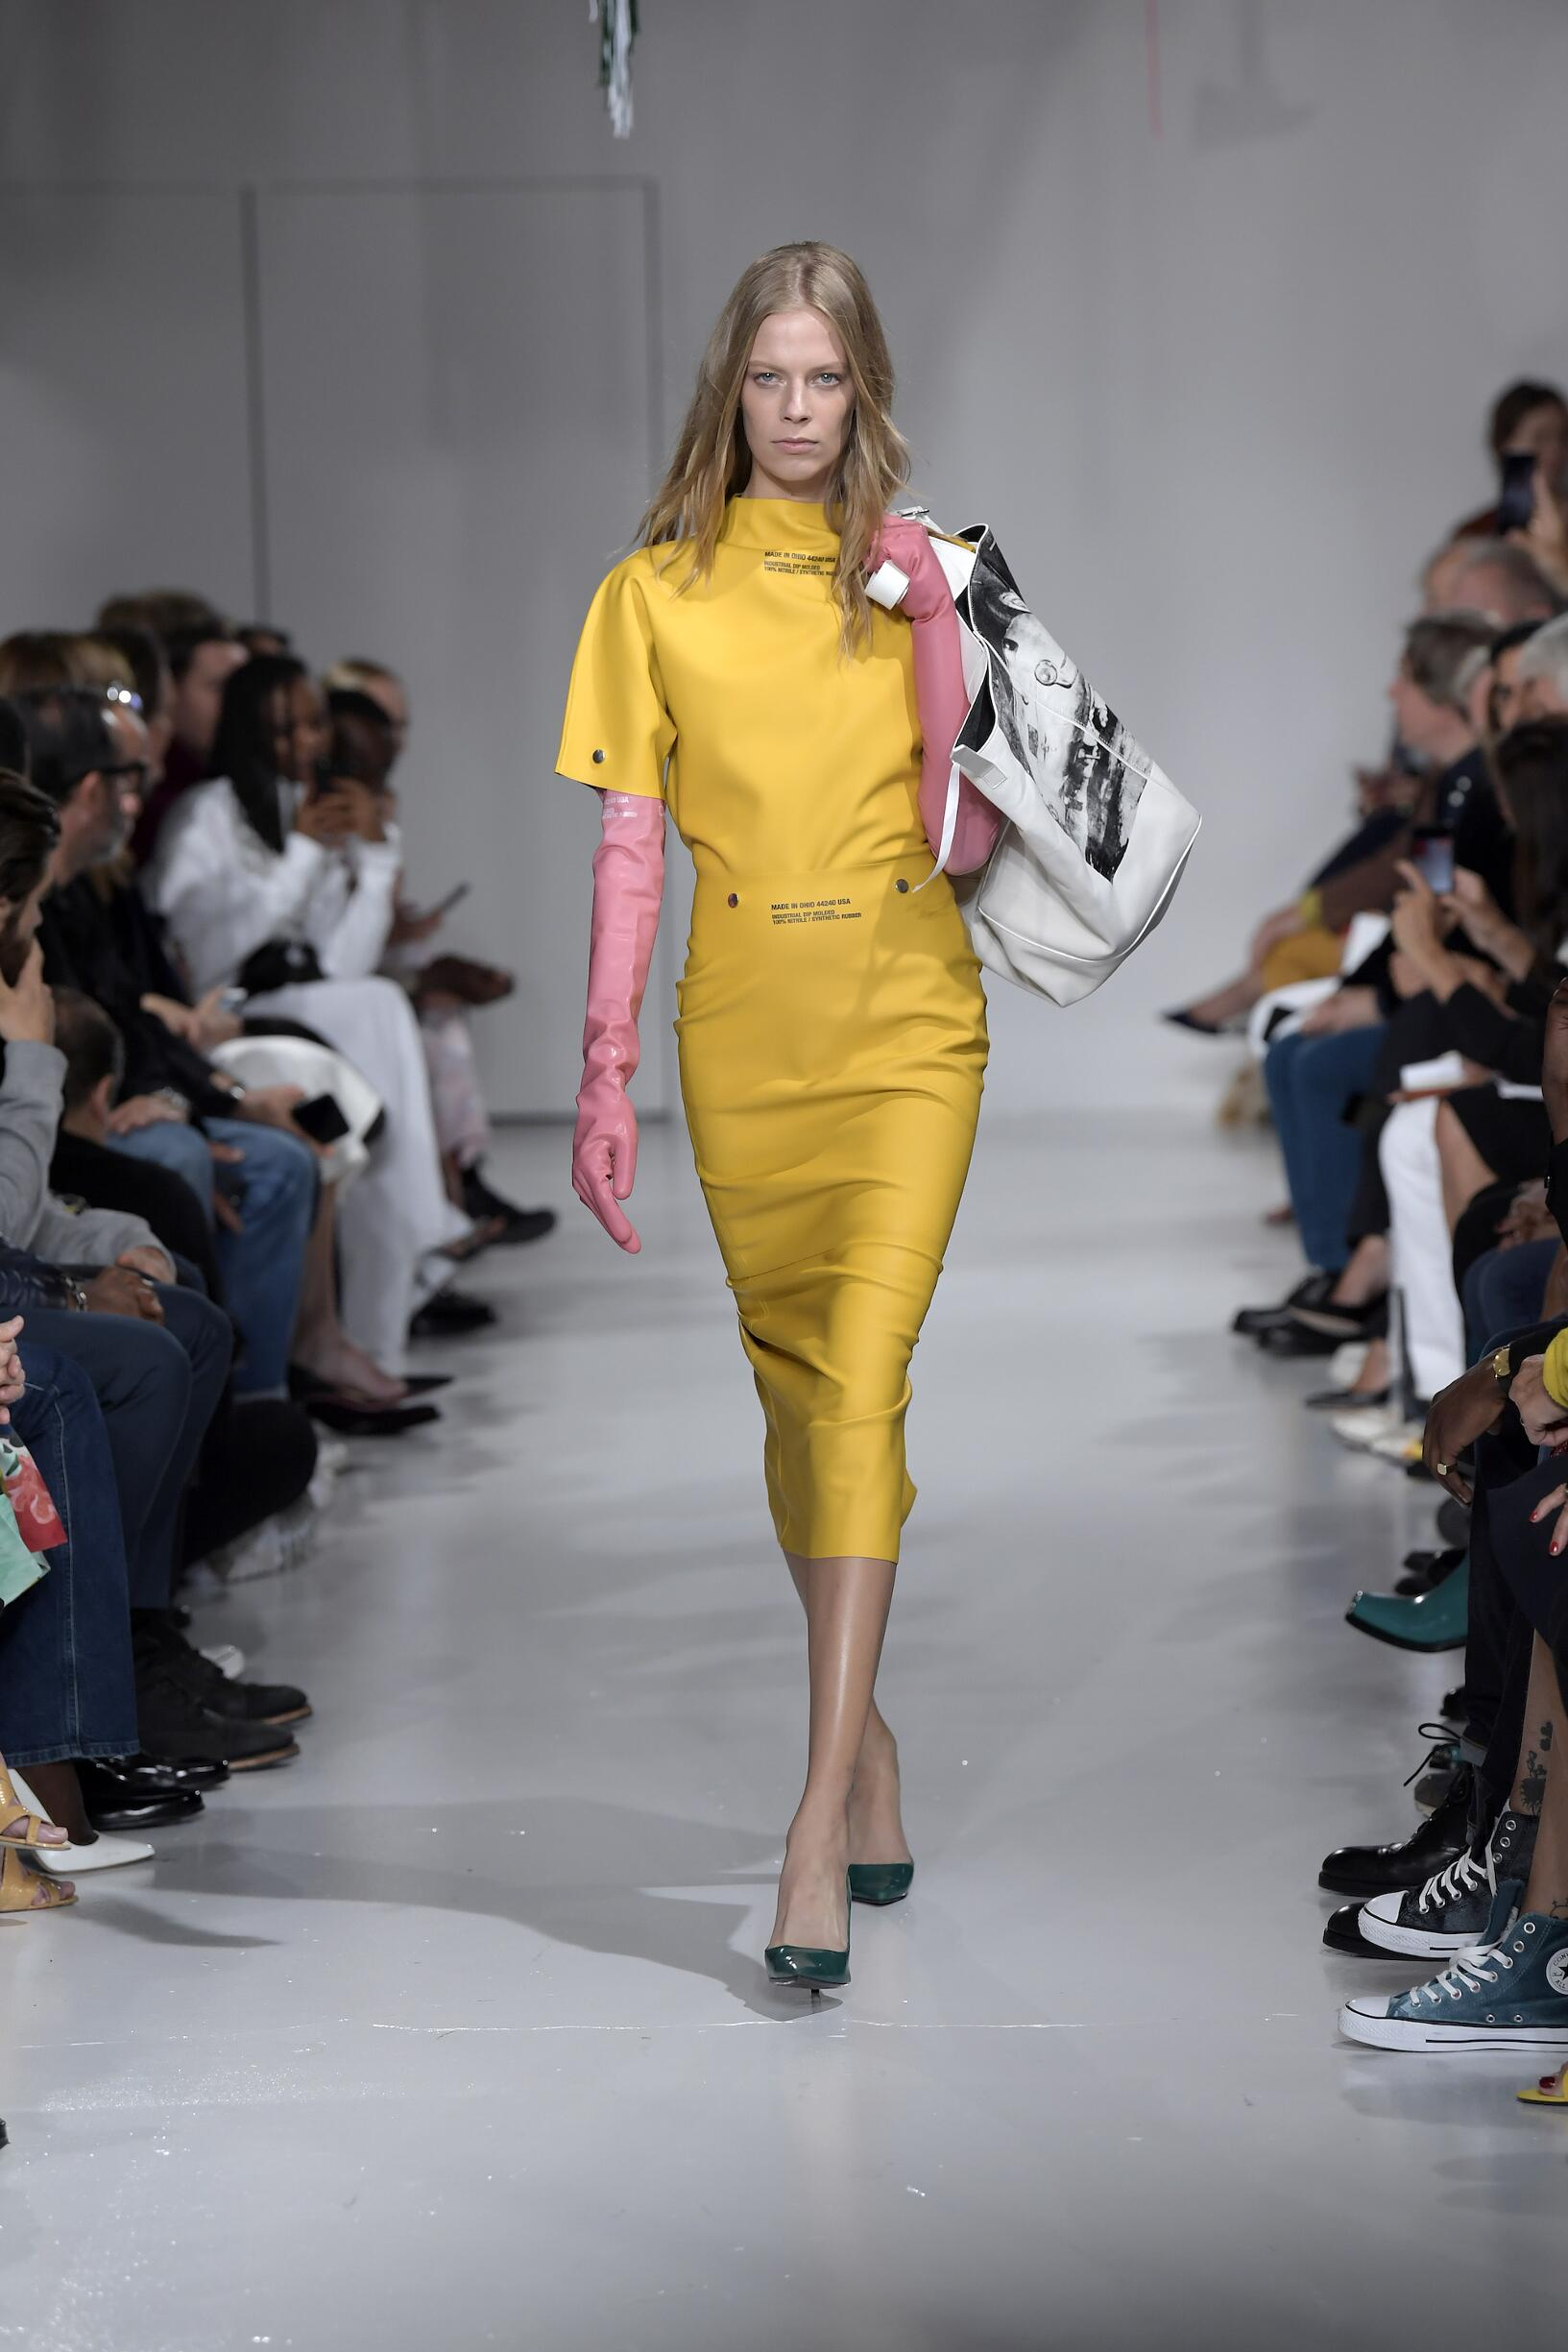 Calvin Klein 205W39NYC Womenswear Collection Trends